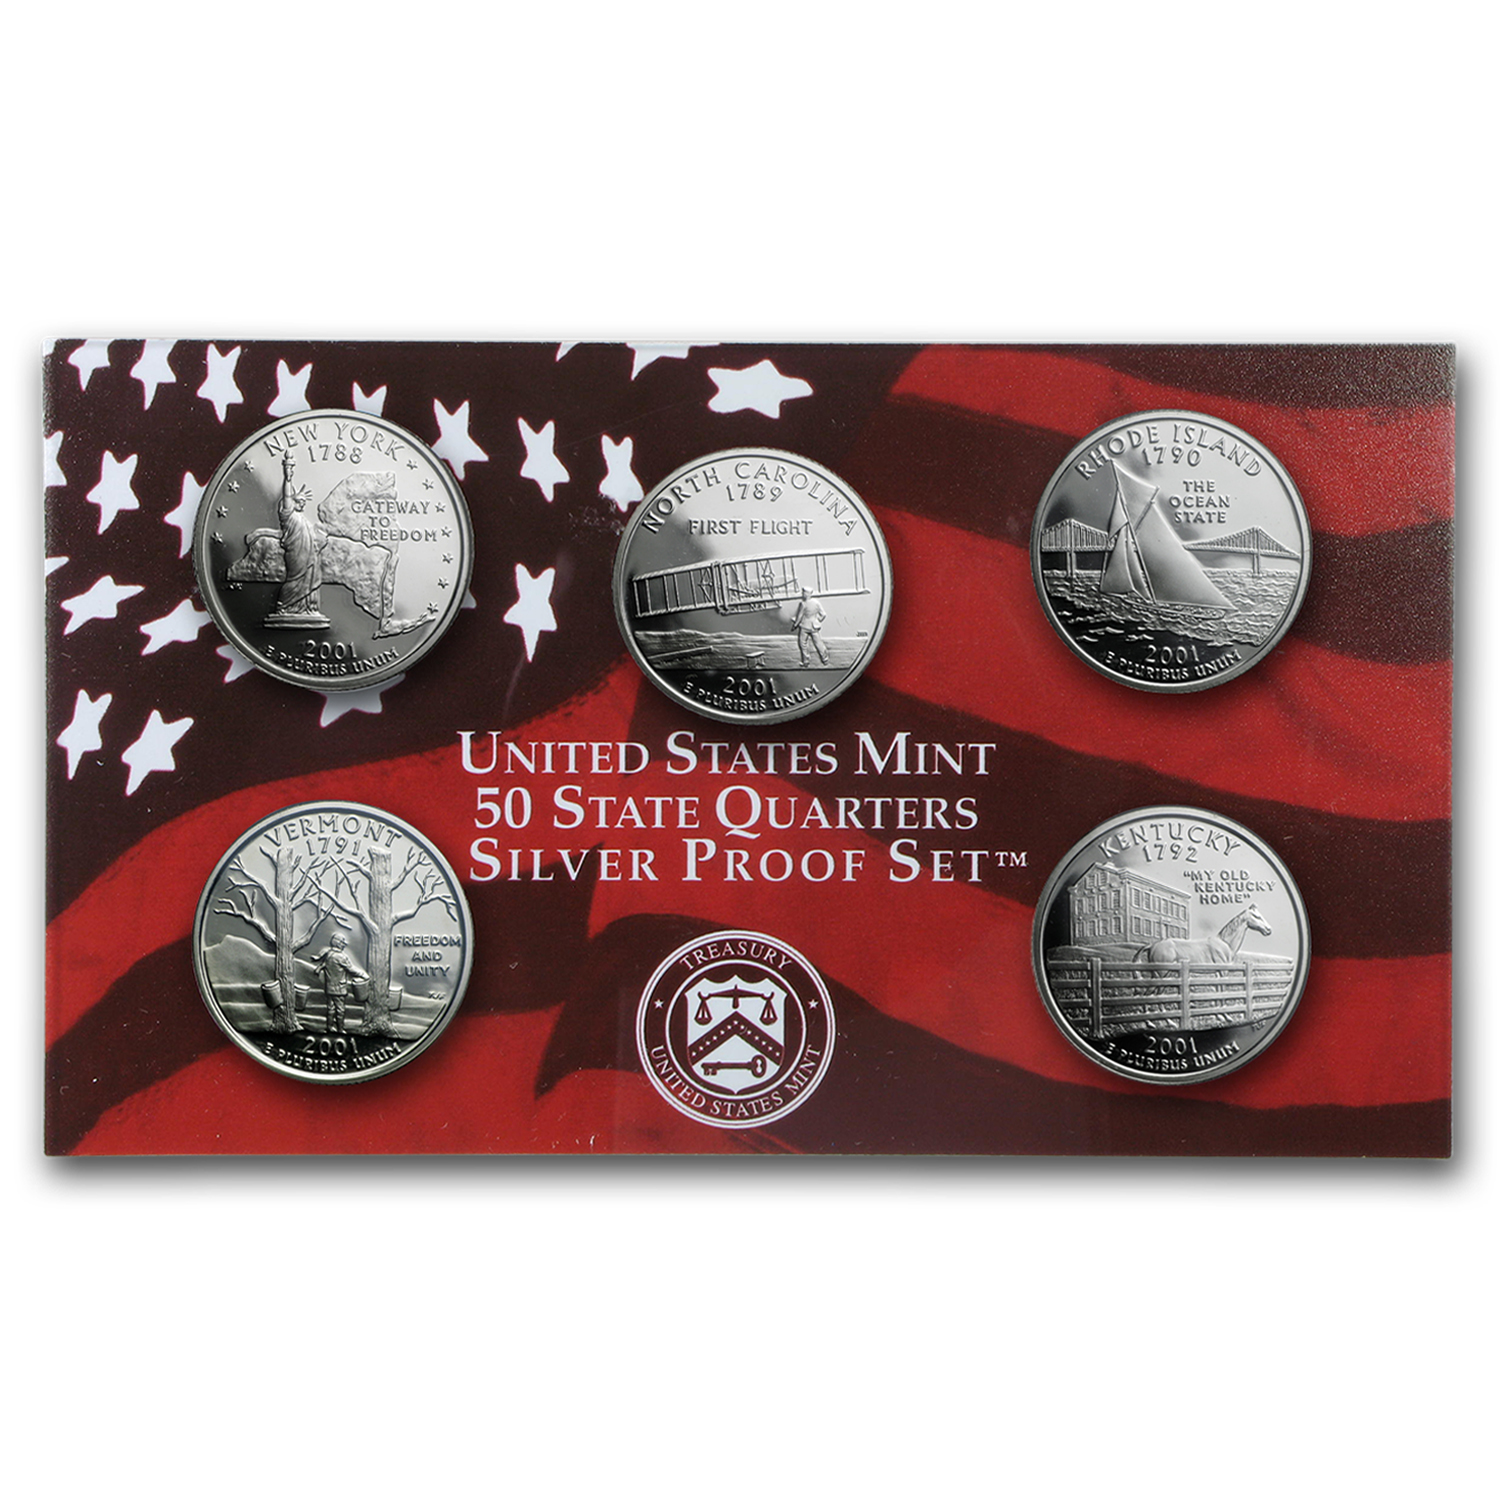 2001 Silver Proof Set